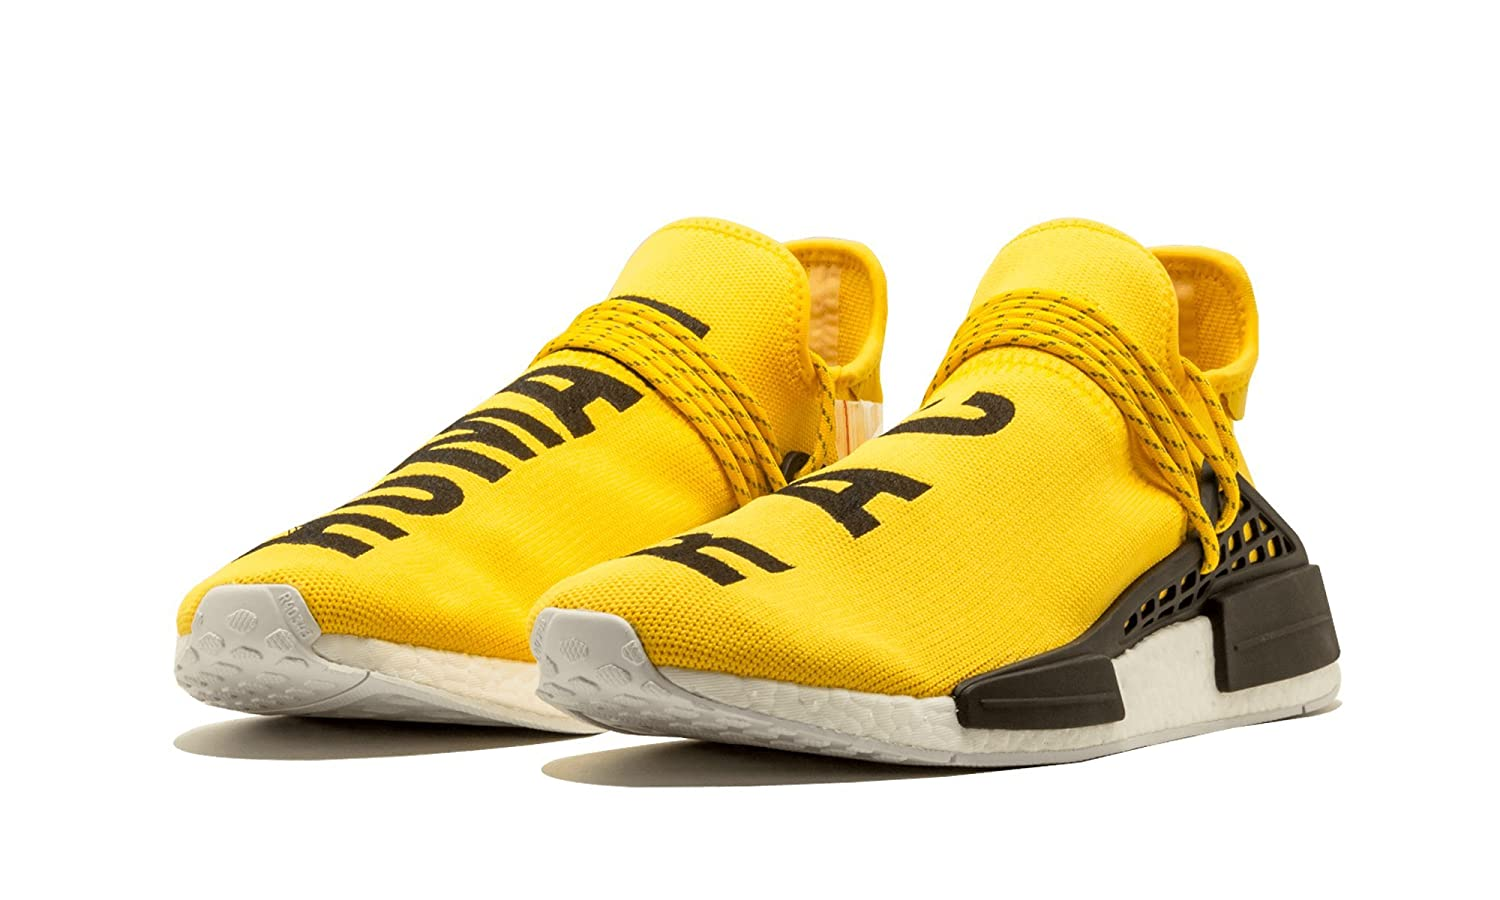 competitive price bc51b 87a34 Adidas NMD x Pharell